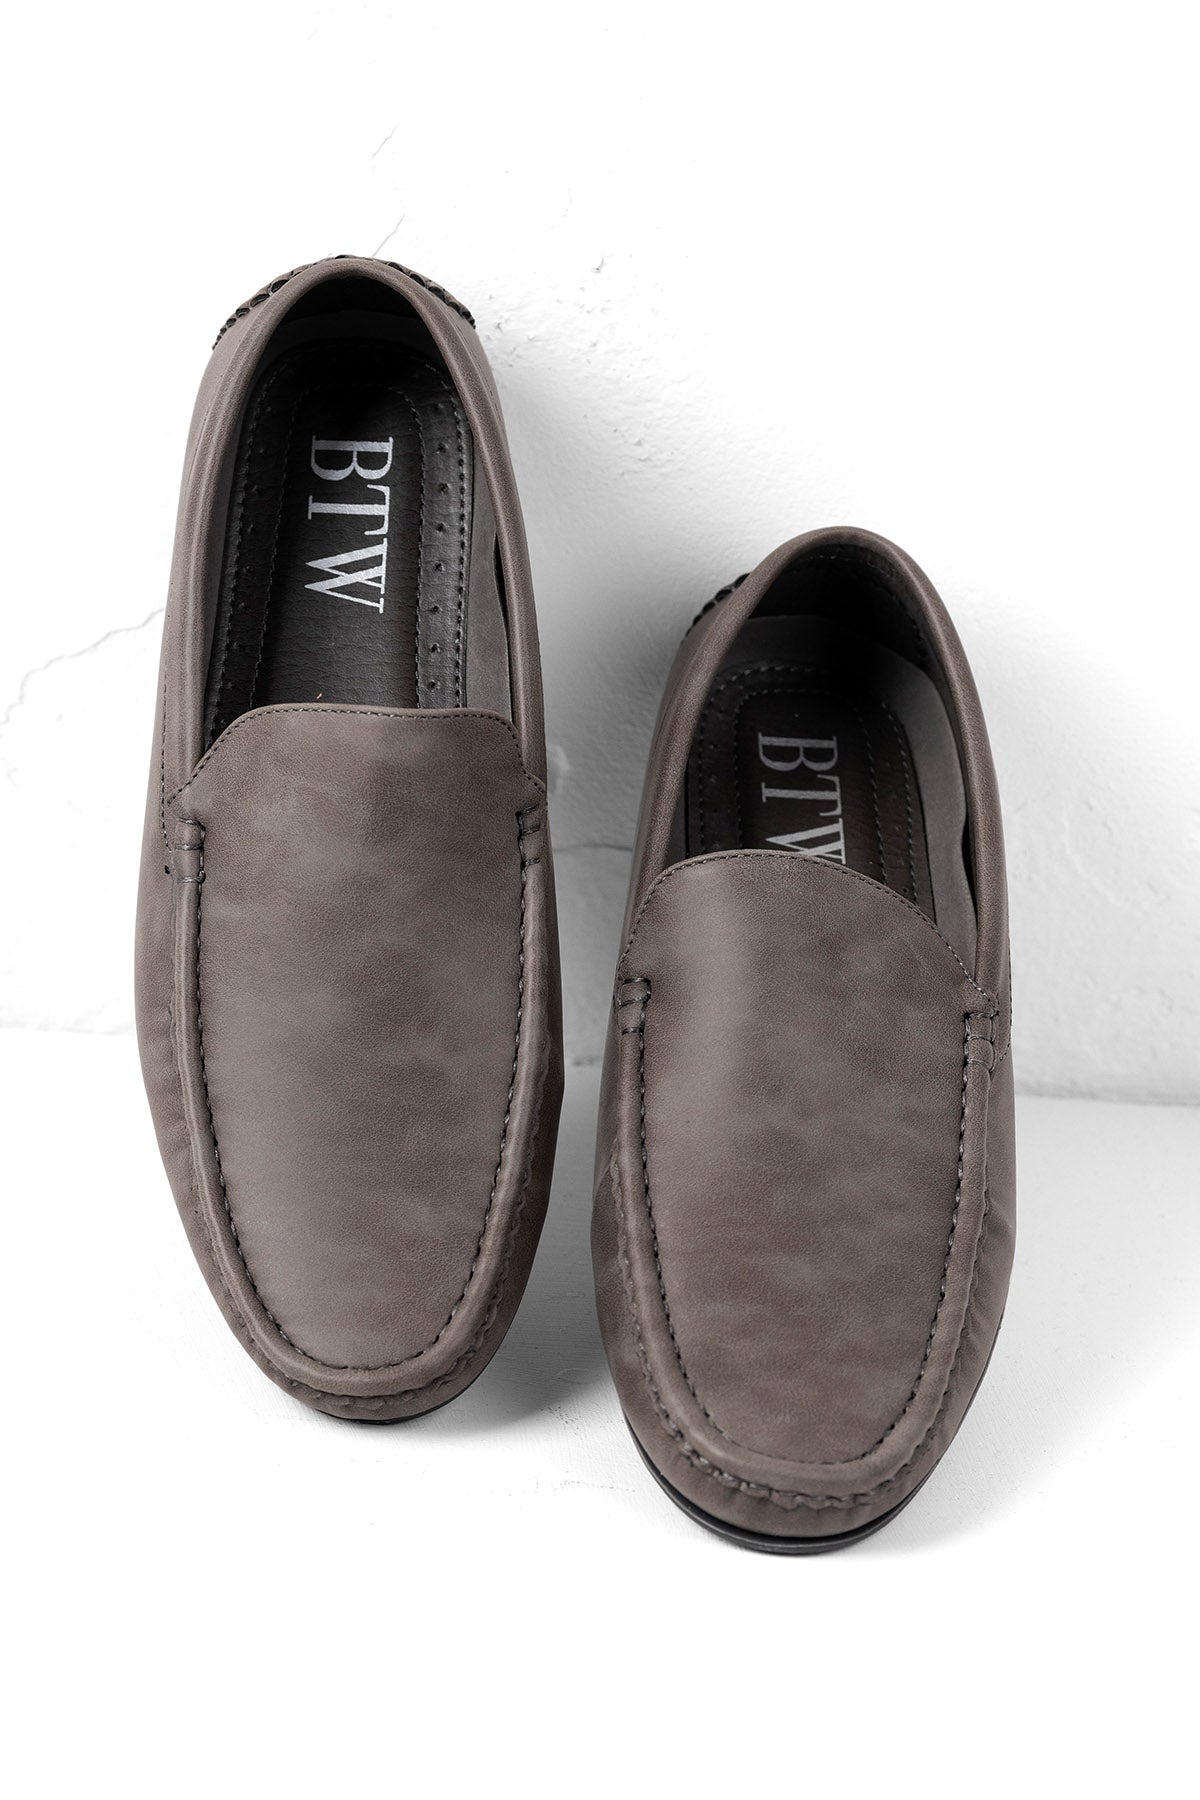 LOAFERS - 537